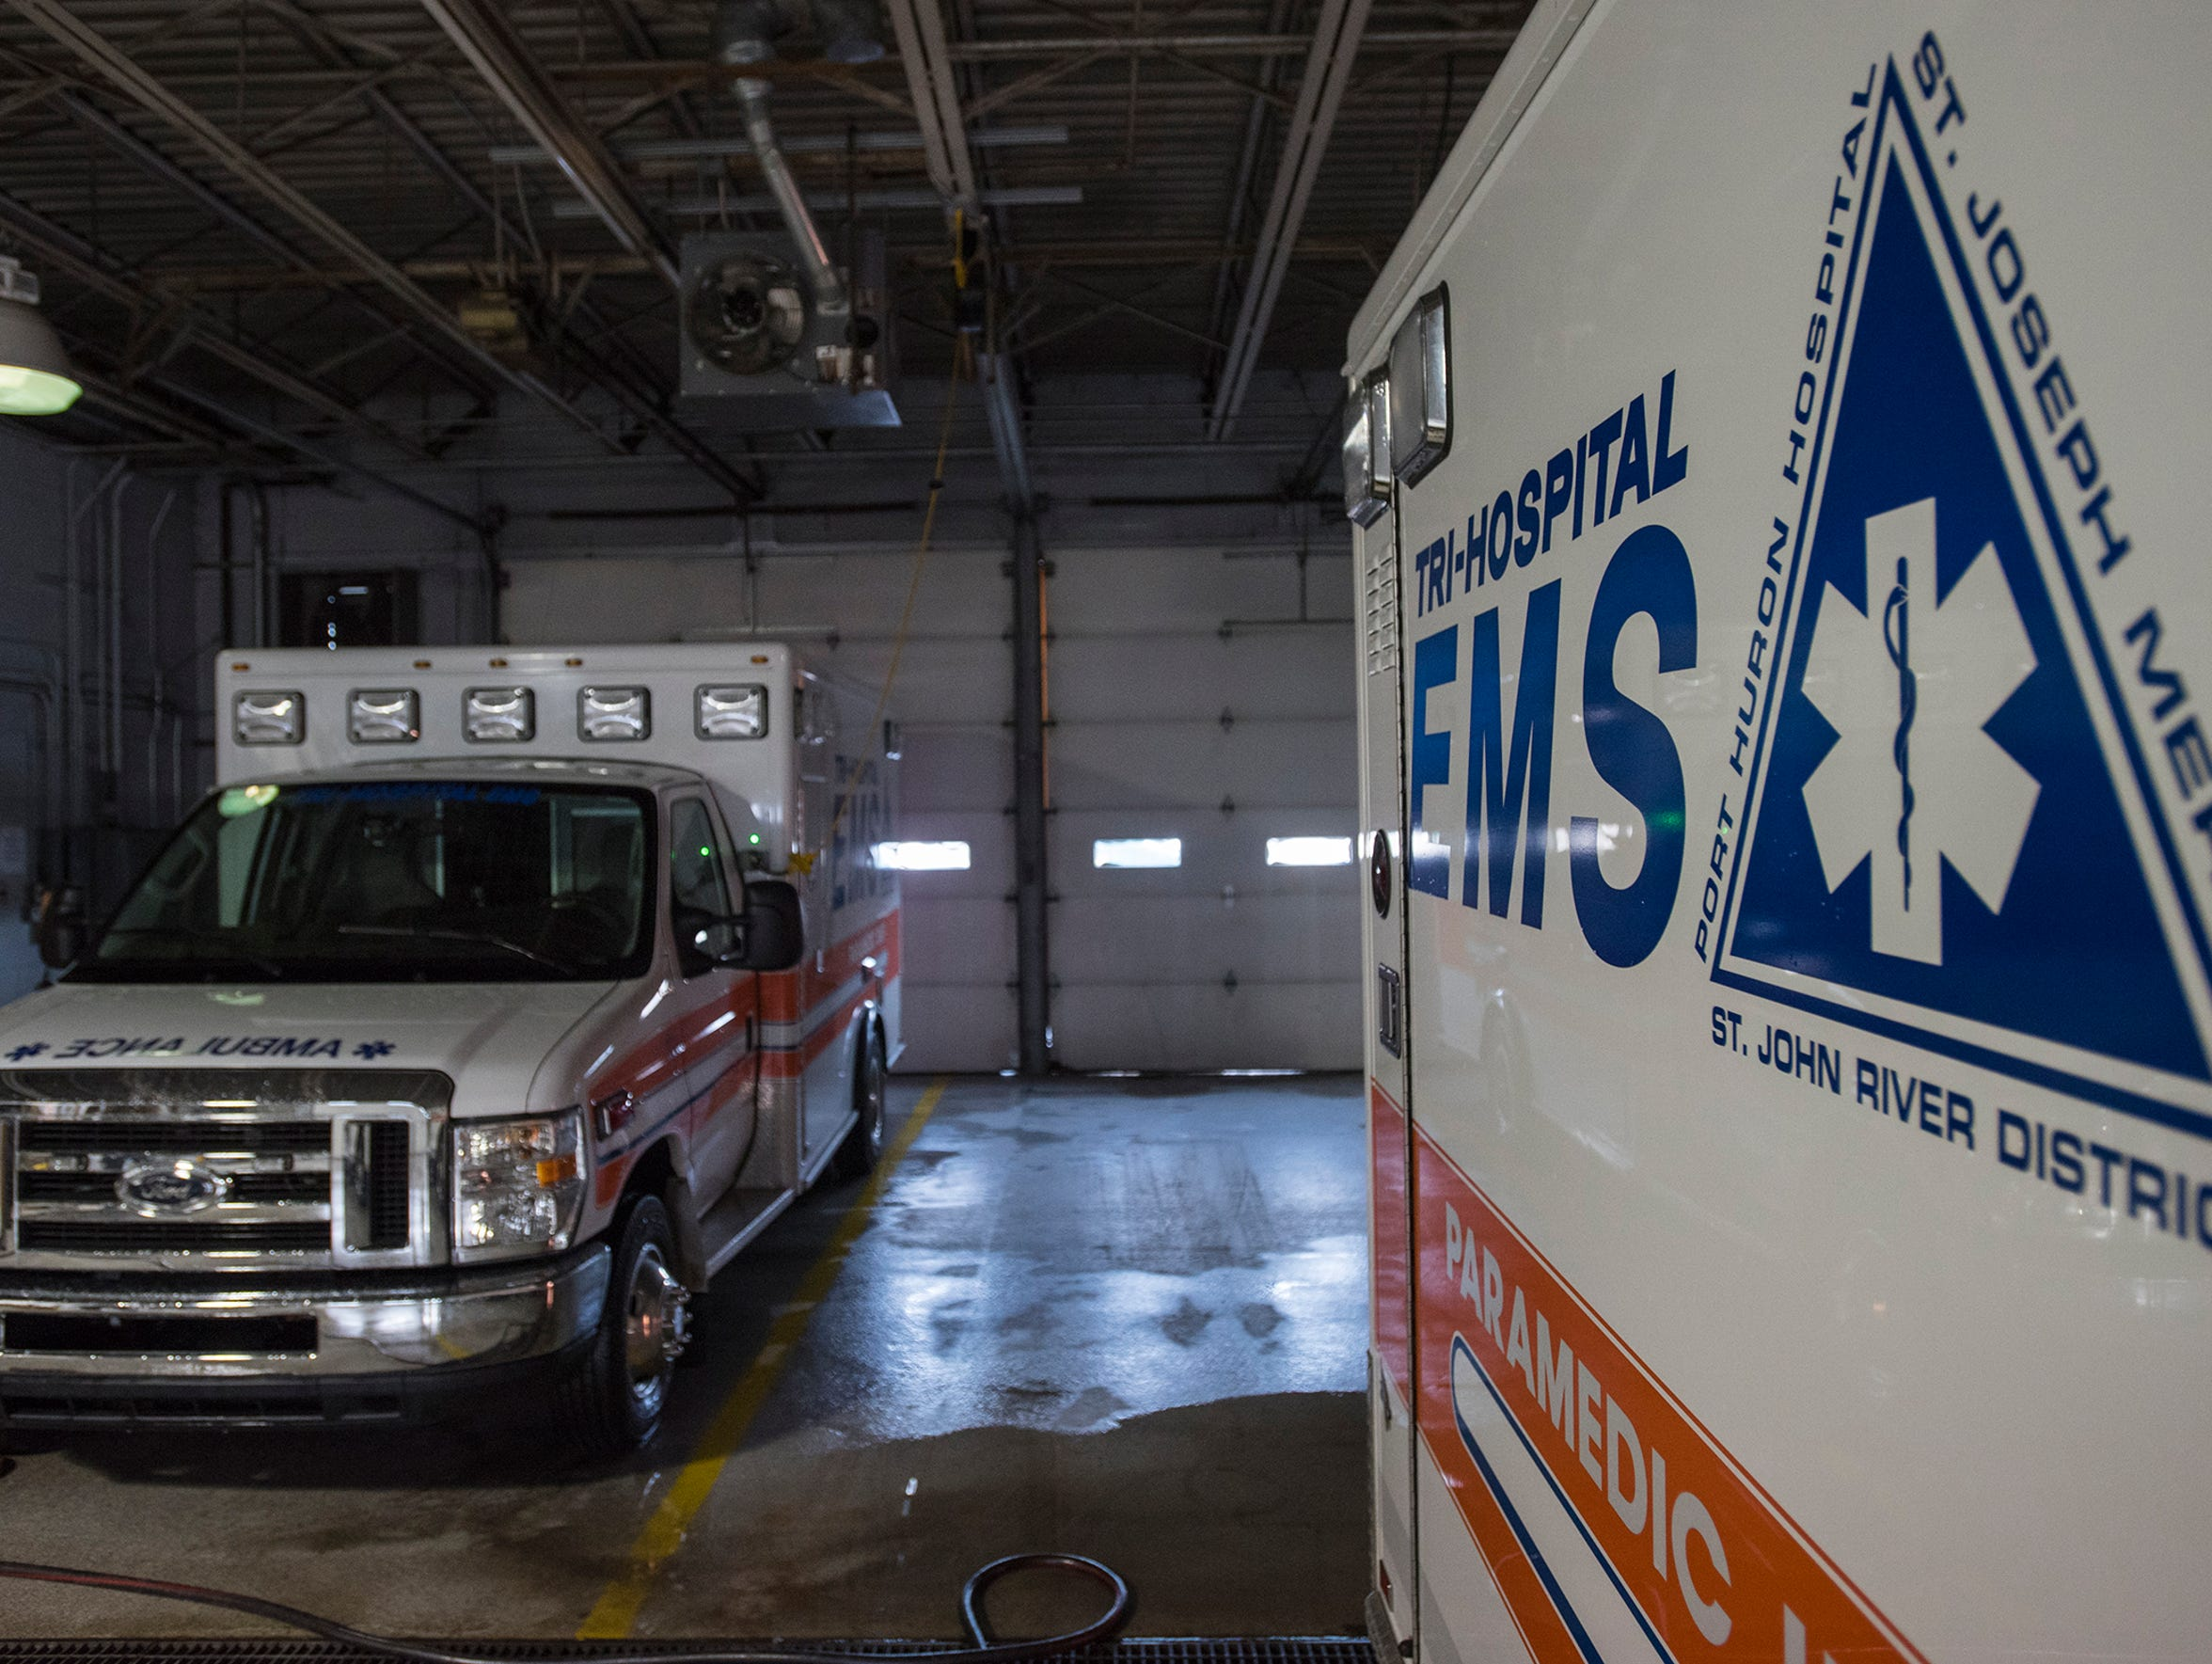 Two Tri-Hospital EMS ambulances are parked in the garage